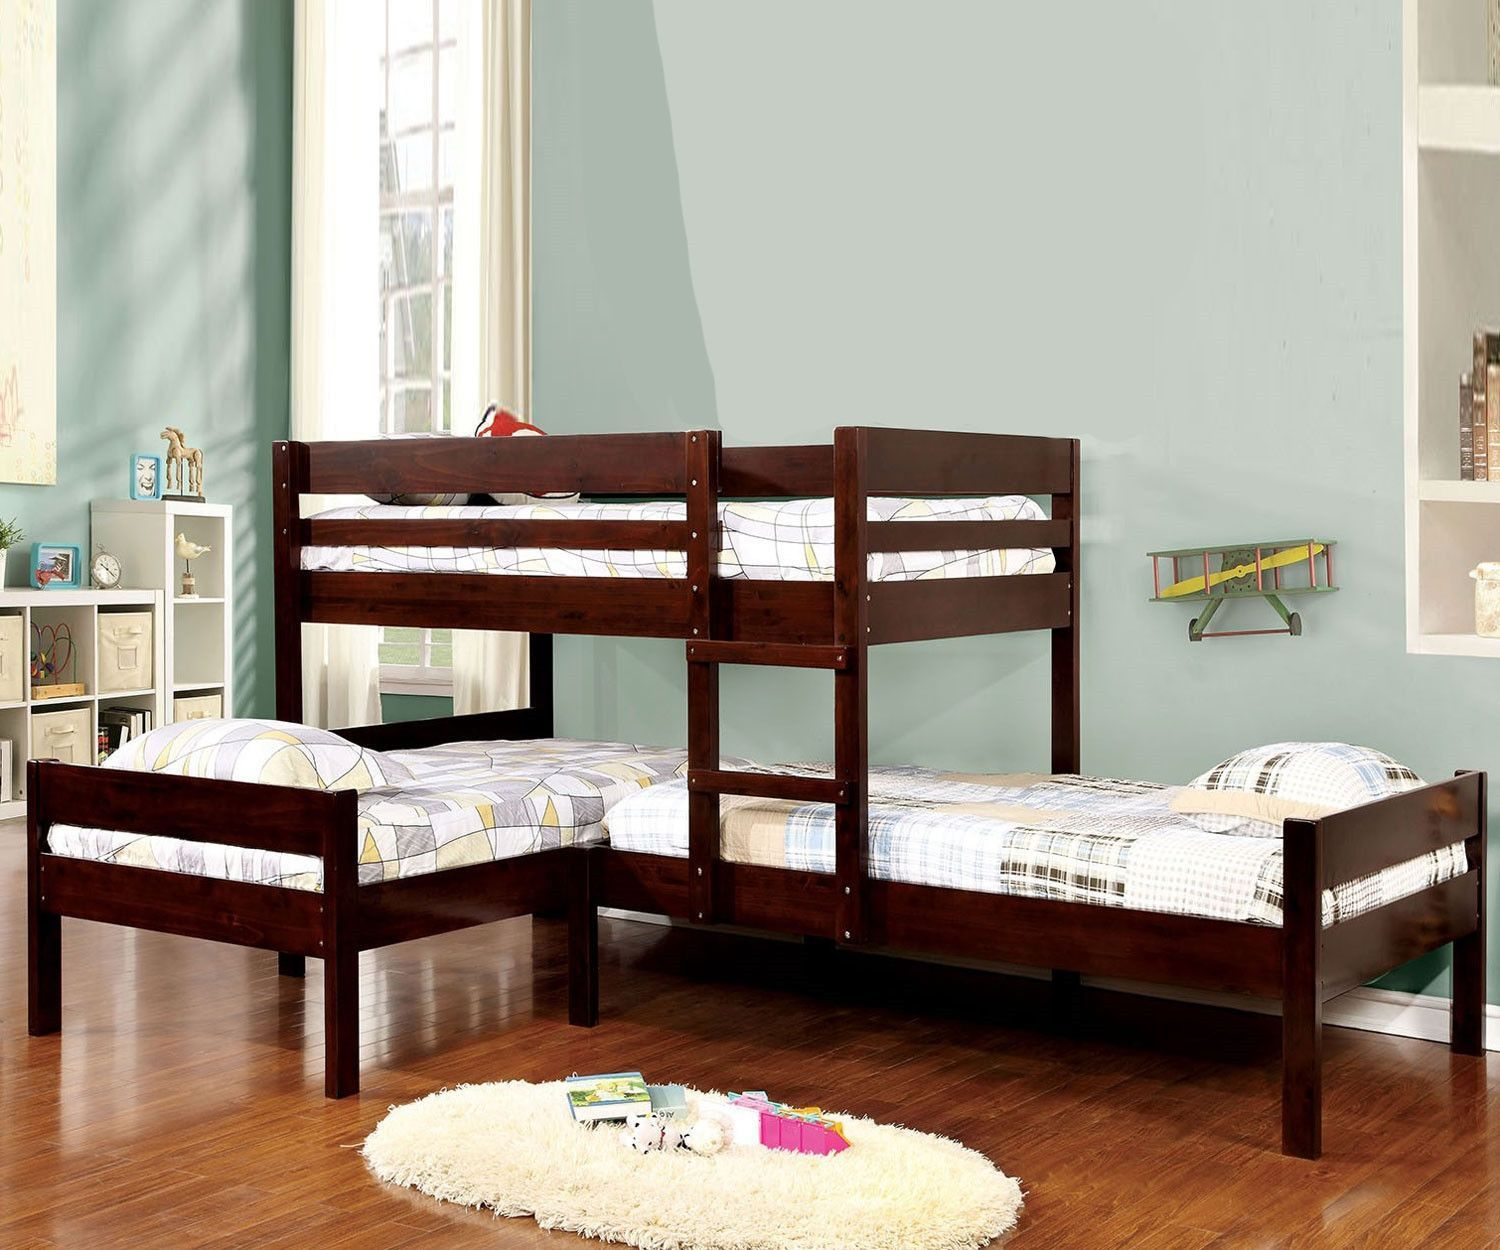 Best Pin On Kids Rooms 400 x 300